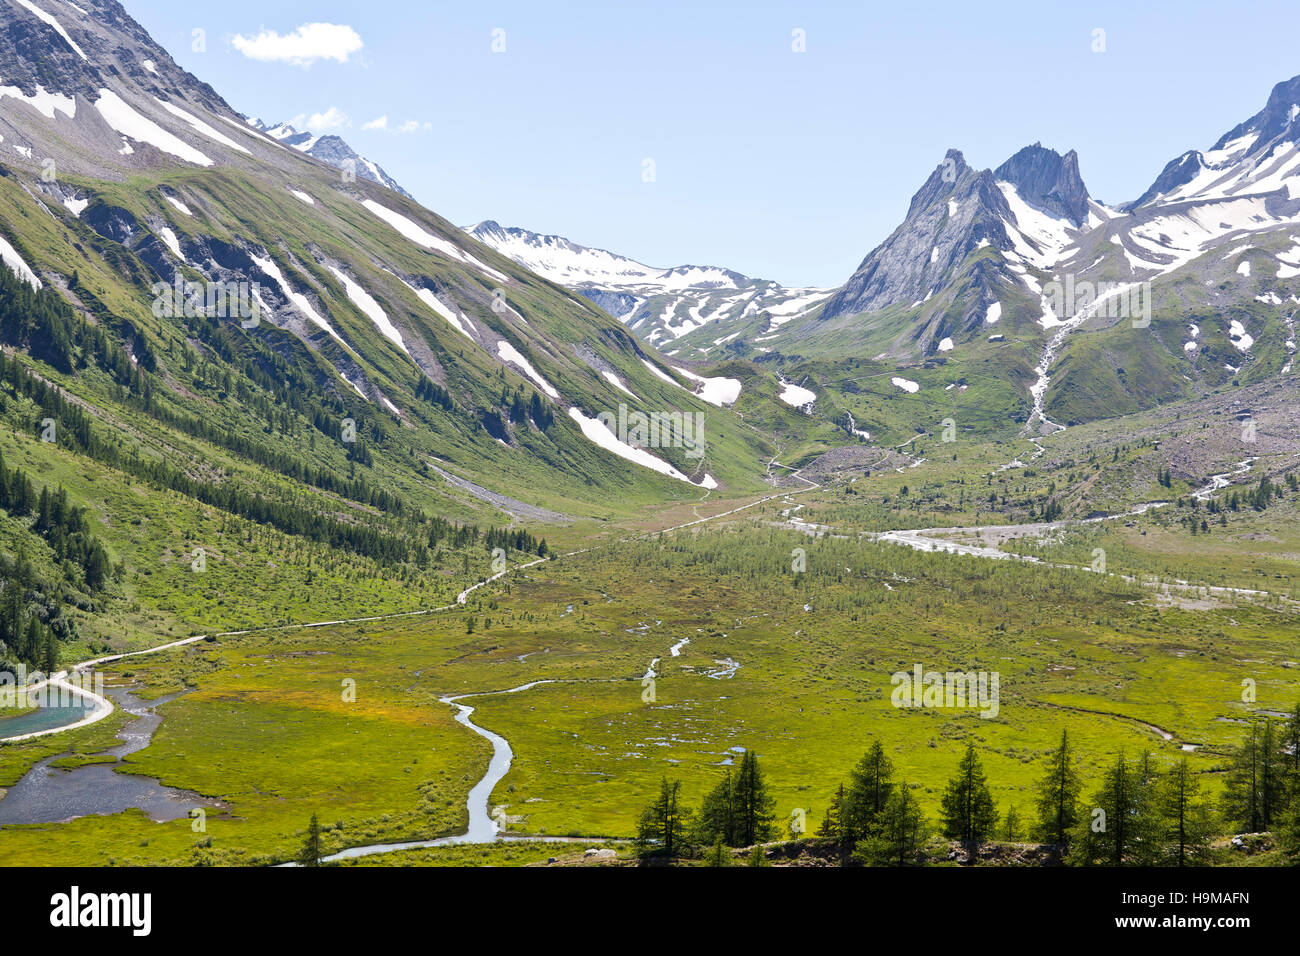 Val Veny Valle d'Aosta Italy meadows creeks snow mountains trees river summer travel - Stock Image